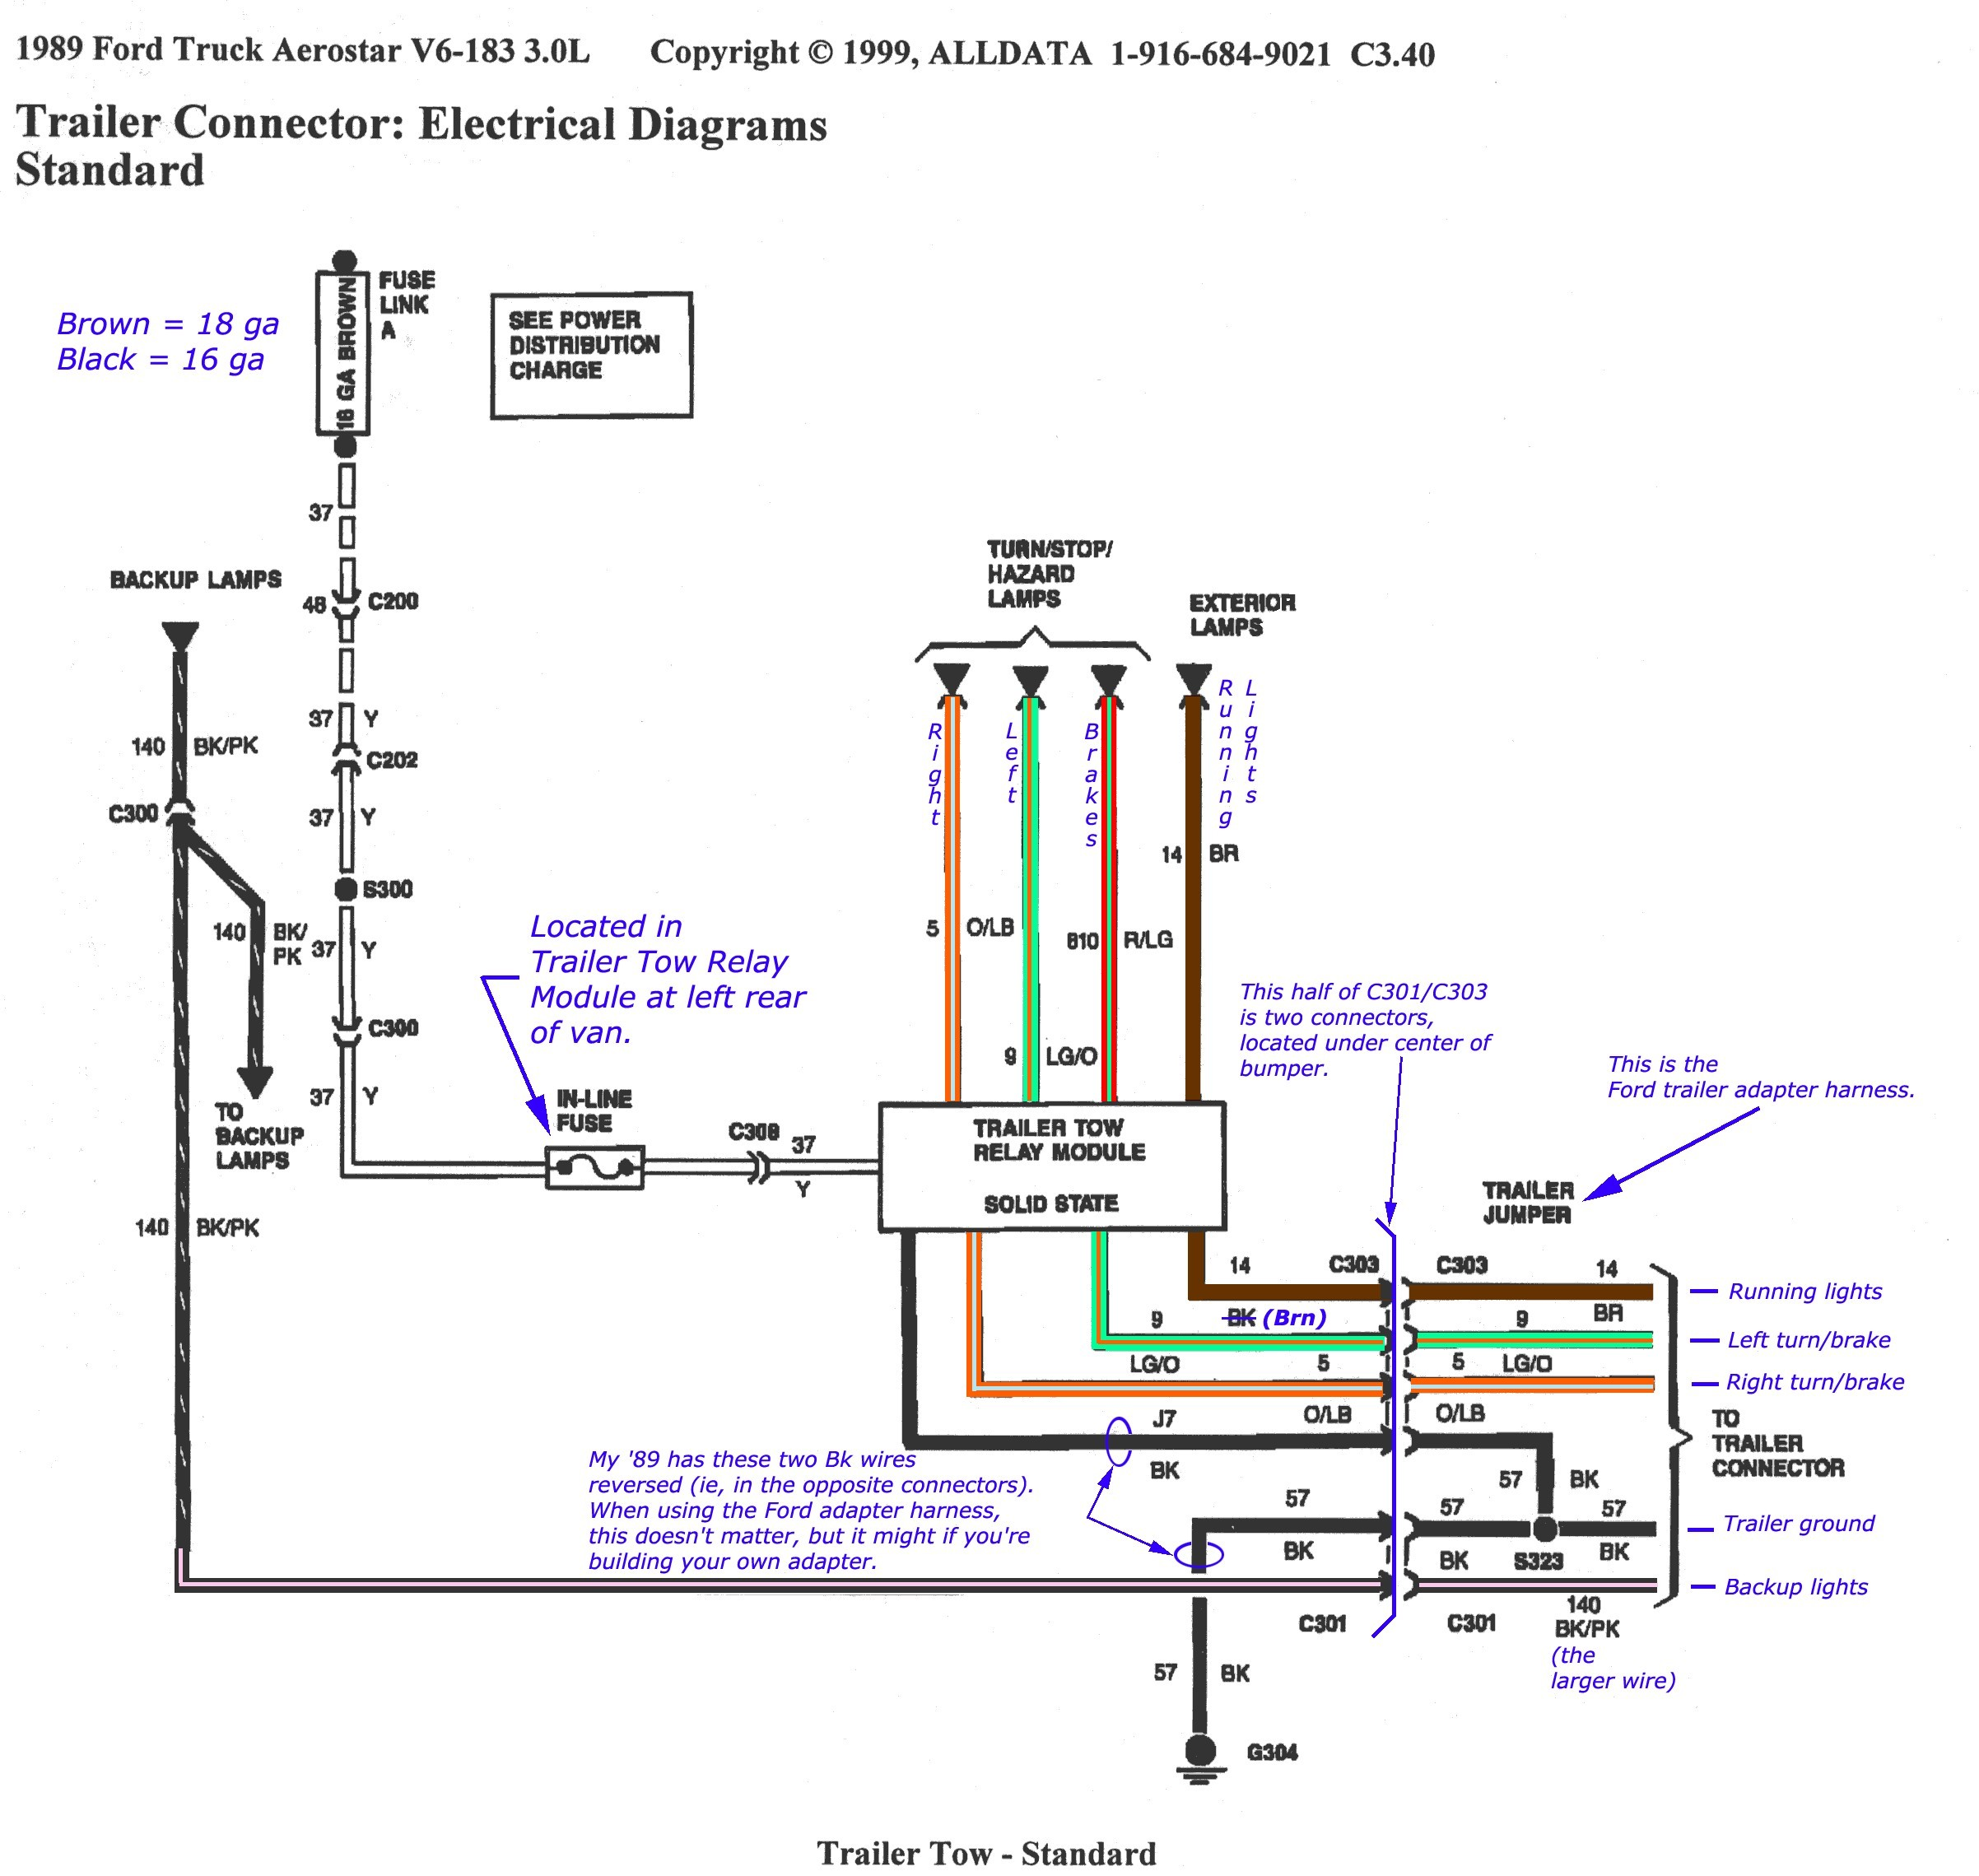 Ford F250 Trailer Wiring Diagram 1990 ford F 150 Wiring Diagram Wiring Diagram Of Ford F250 Trailer Wiring Diagram